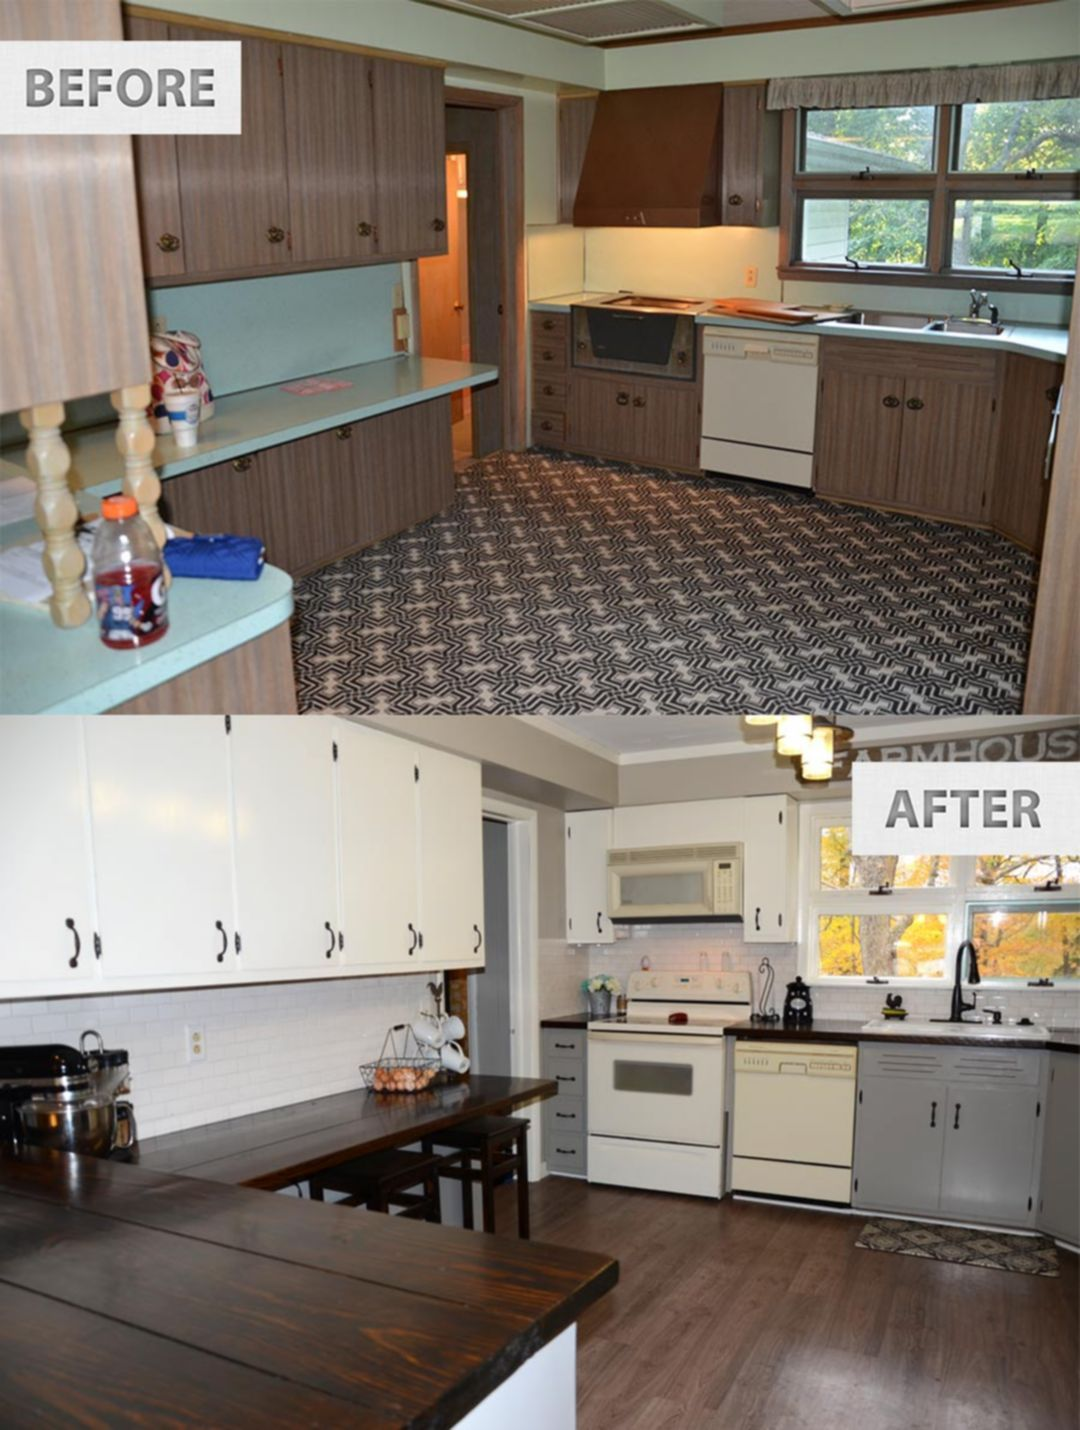 45 Easy Kitchen Renovations On A Budget For Best Kitchen Renovation